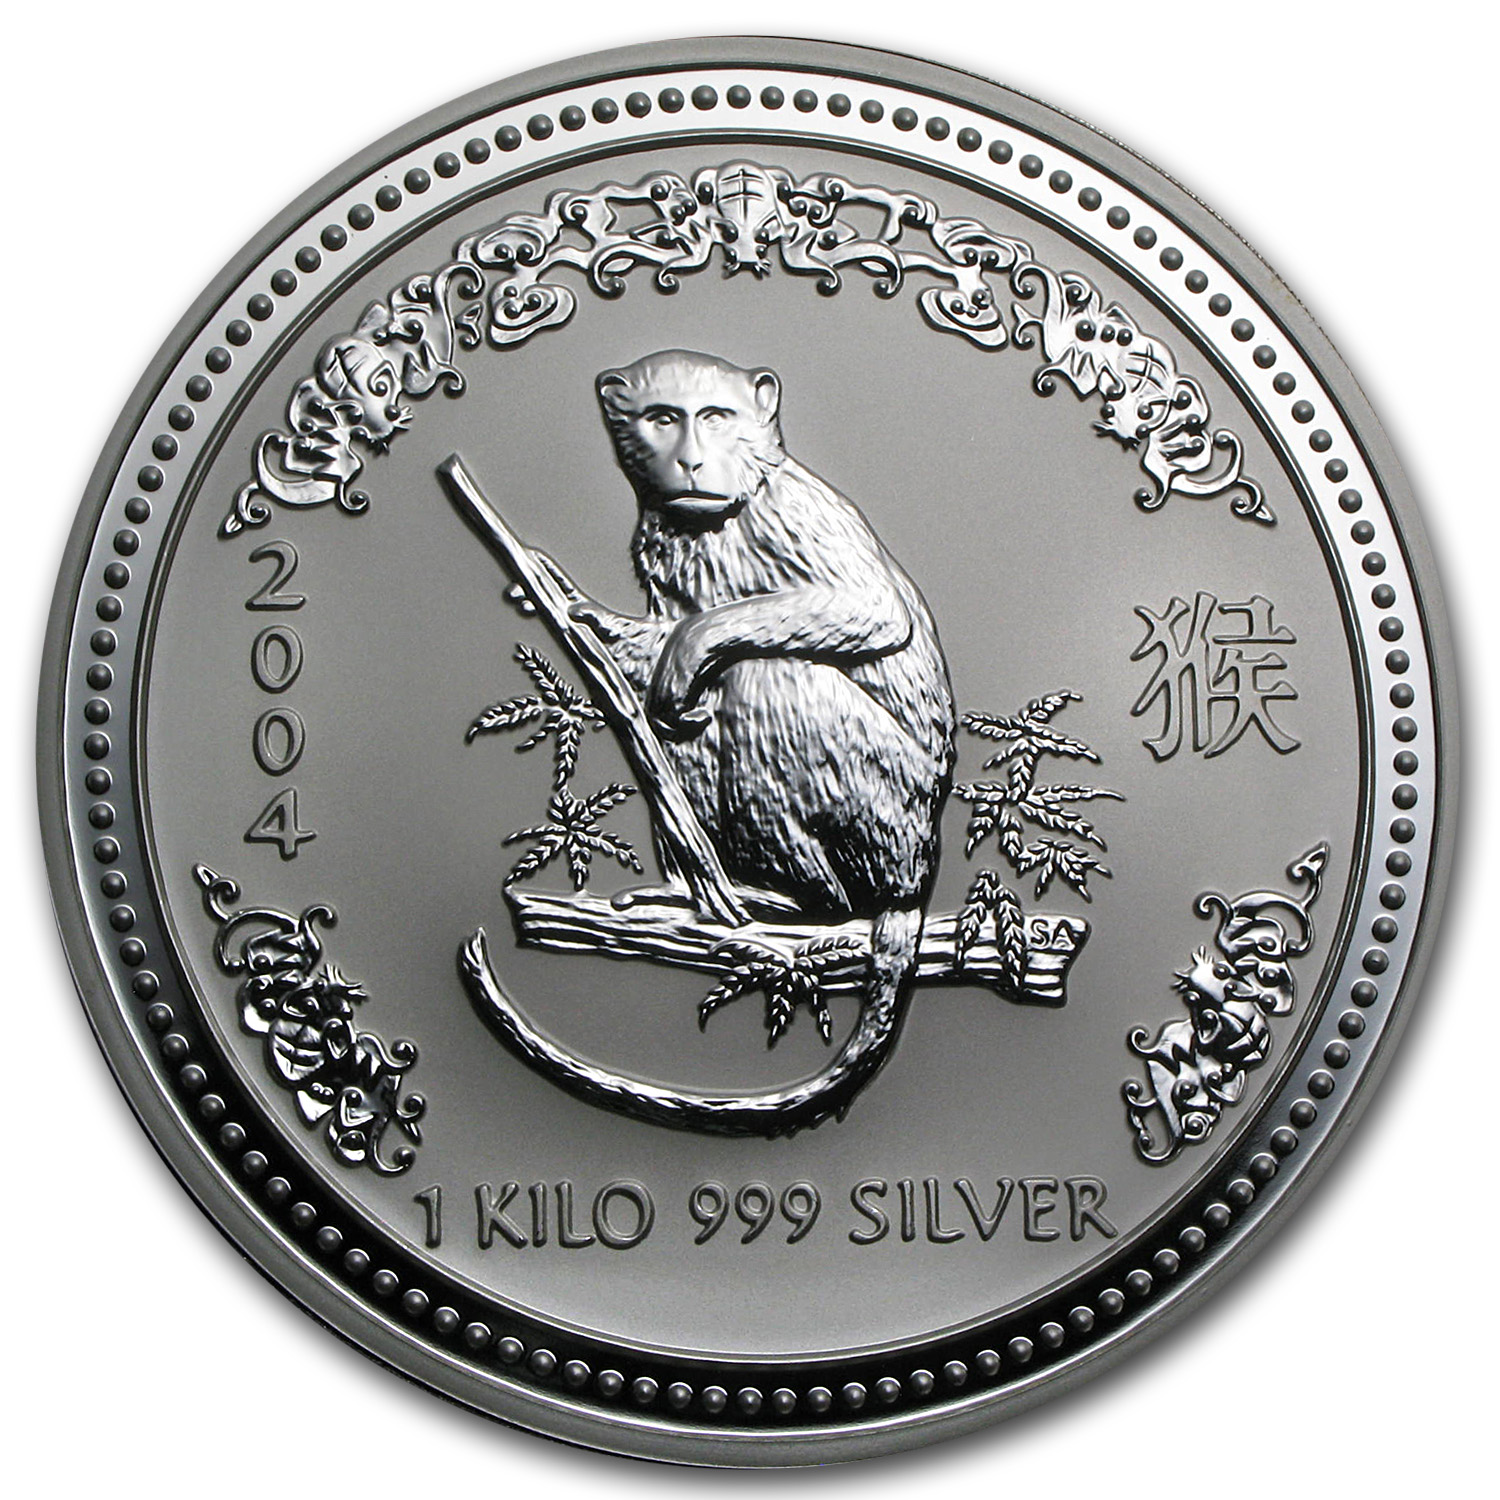 2004 Australia 1 kilo Silver Year of the Monkey BU